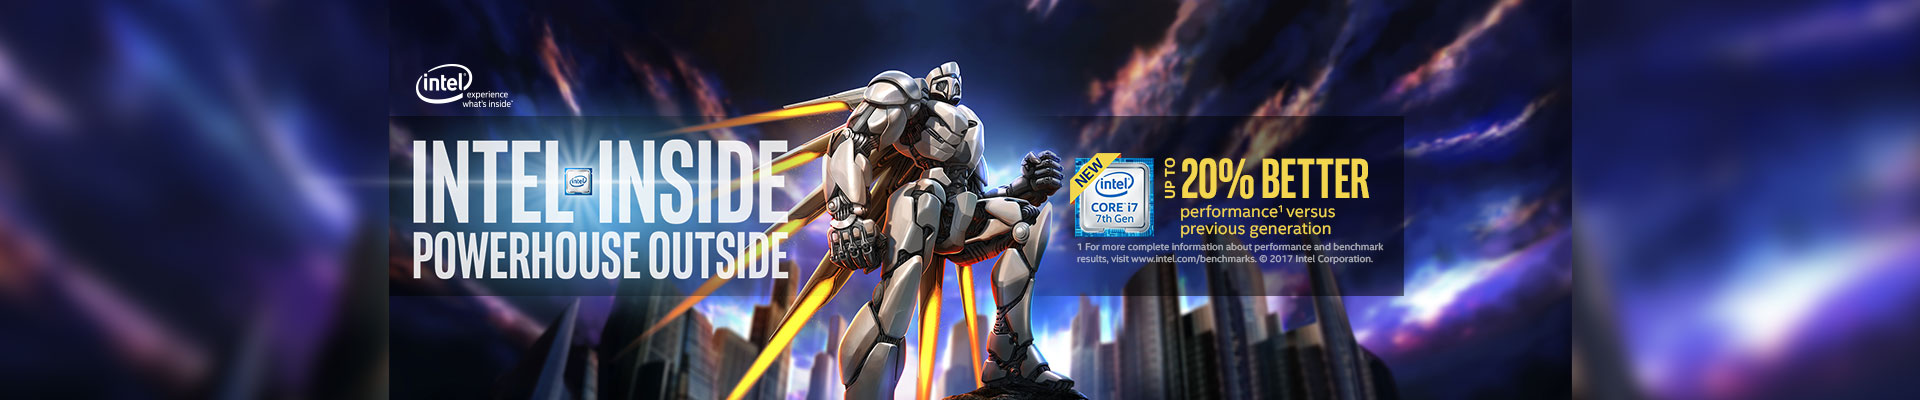 Intel 7th Generation Intel Core Processors